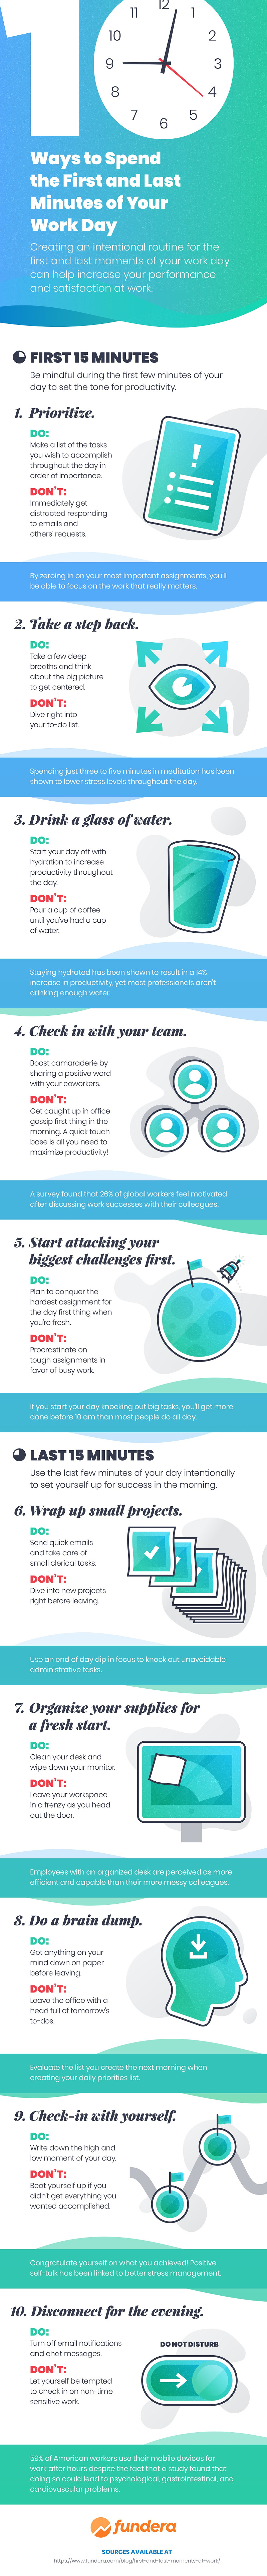 [Infographic] How To Start And End Your Workday